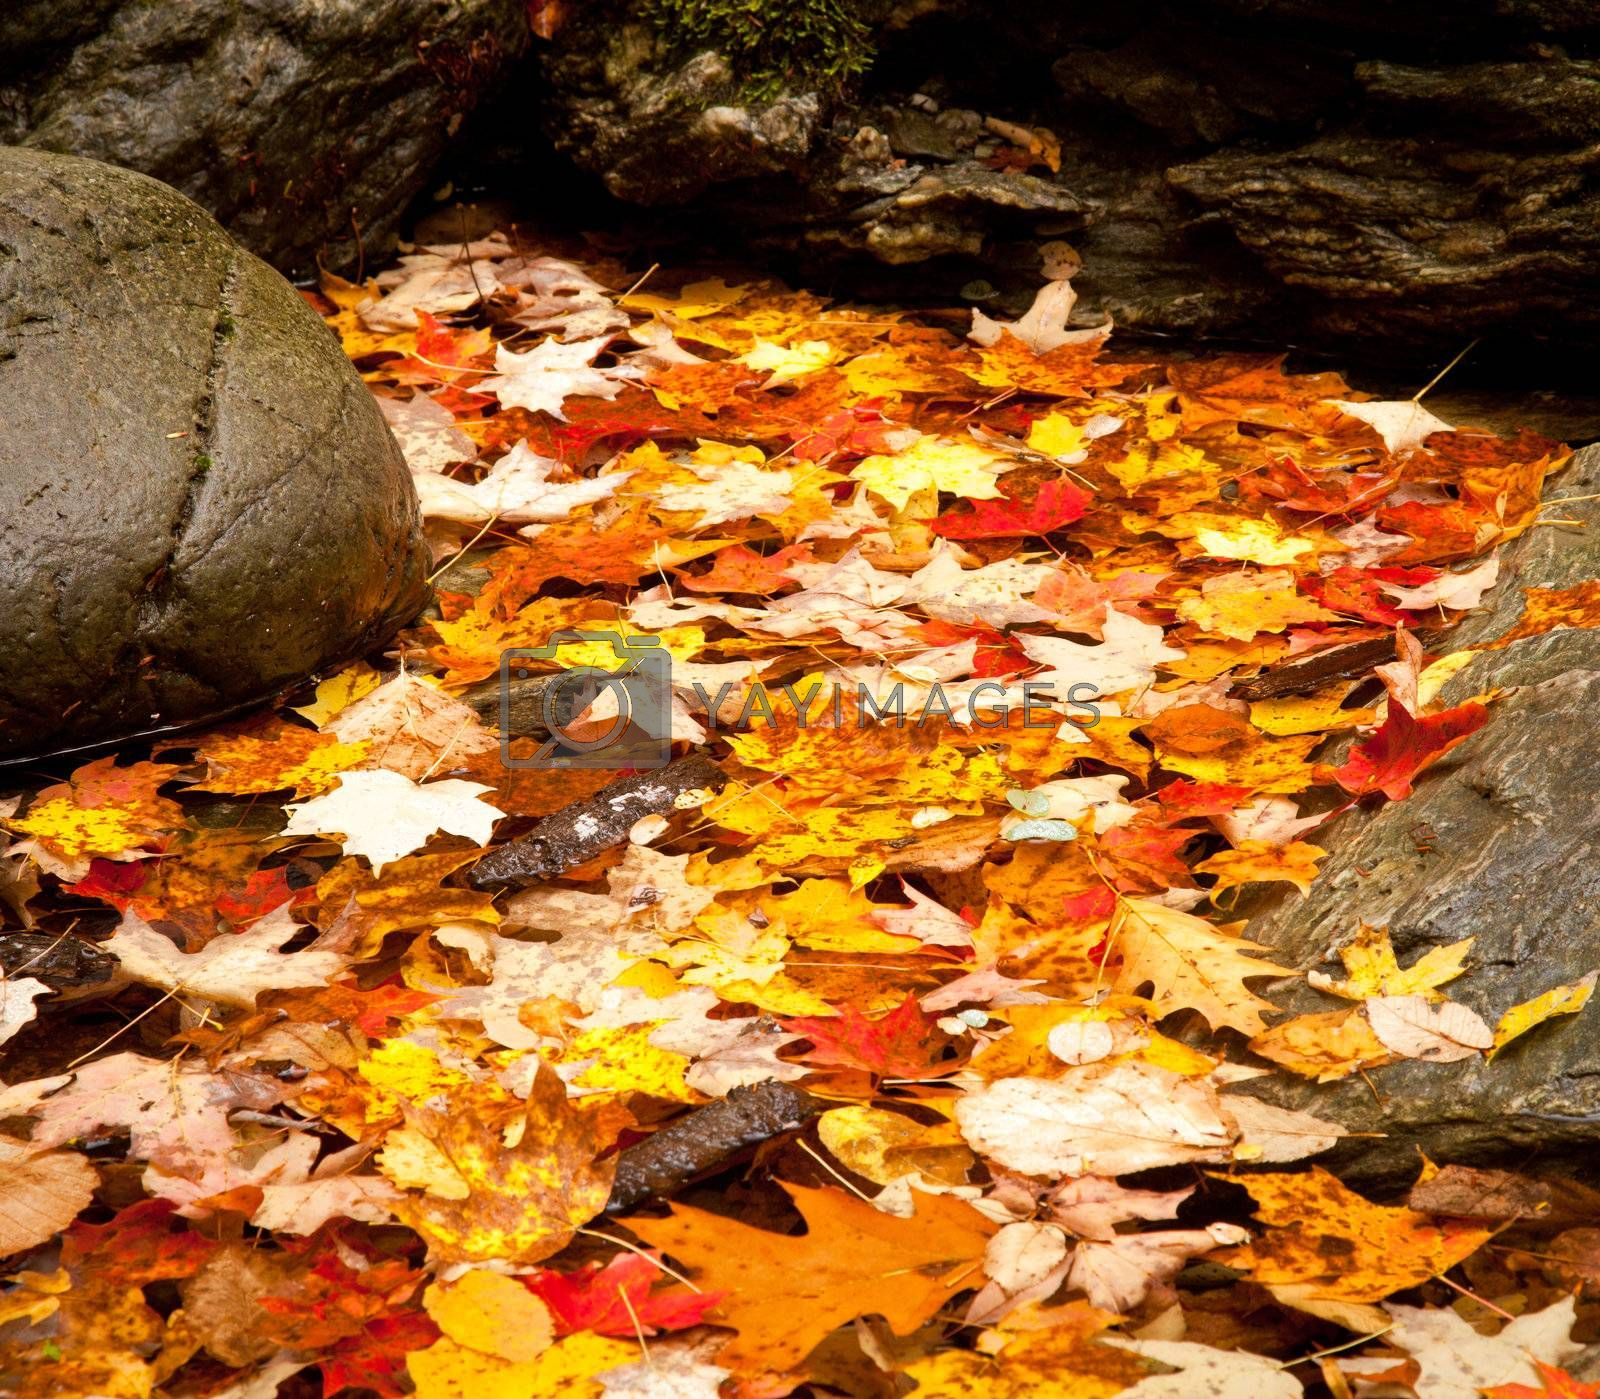 Royalty free image of Fall leaves in river by steheap